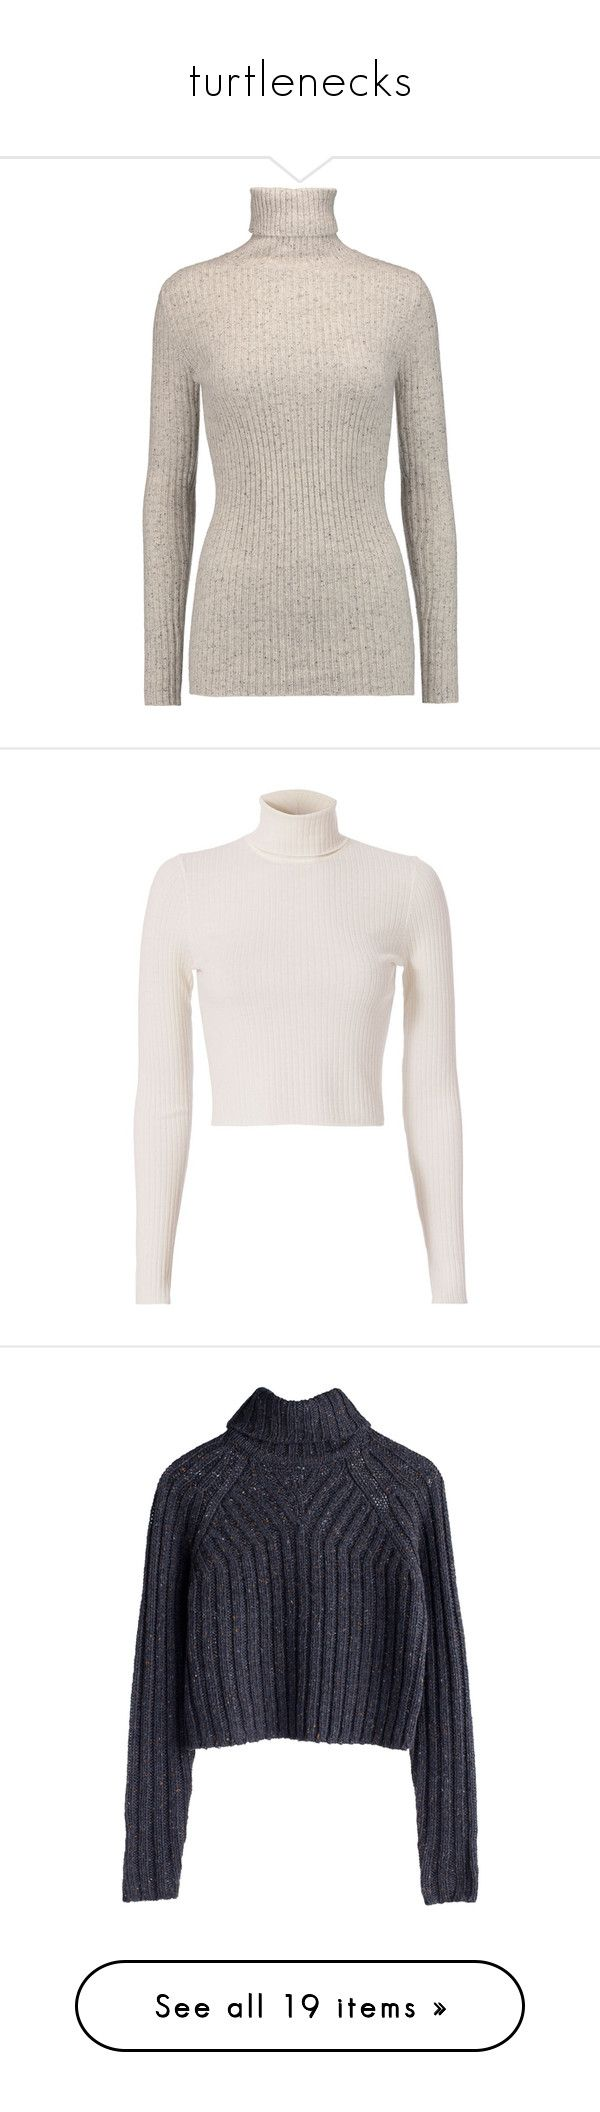 """turtlenecks"" by sarahelisabetha ❤ liked on Polyvore featuring tops, sweaters, pullover sweater, cropped pullover sweater, cropped sweater, turtleneck crop tops, brown pullover sweater, blusa, jumpers and light gray"